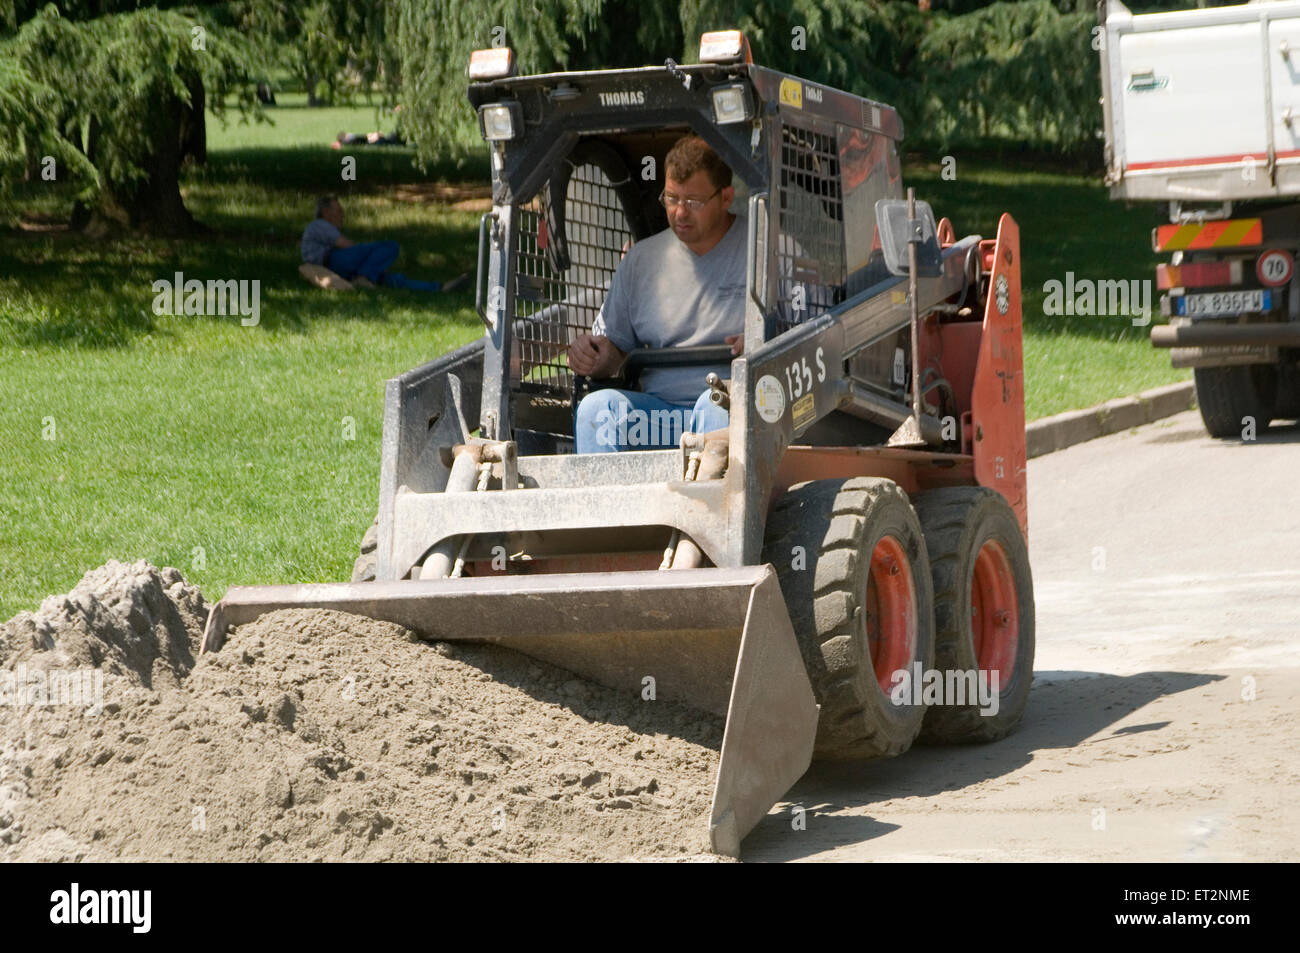 mini digger diggers bobcat earth mover movers earthmover earthmovers - Stock Image